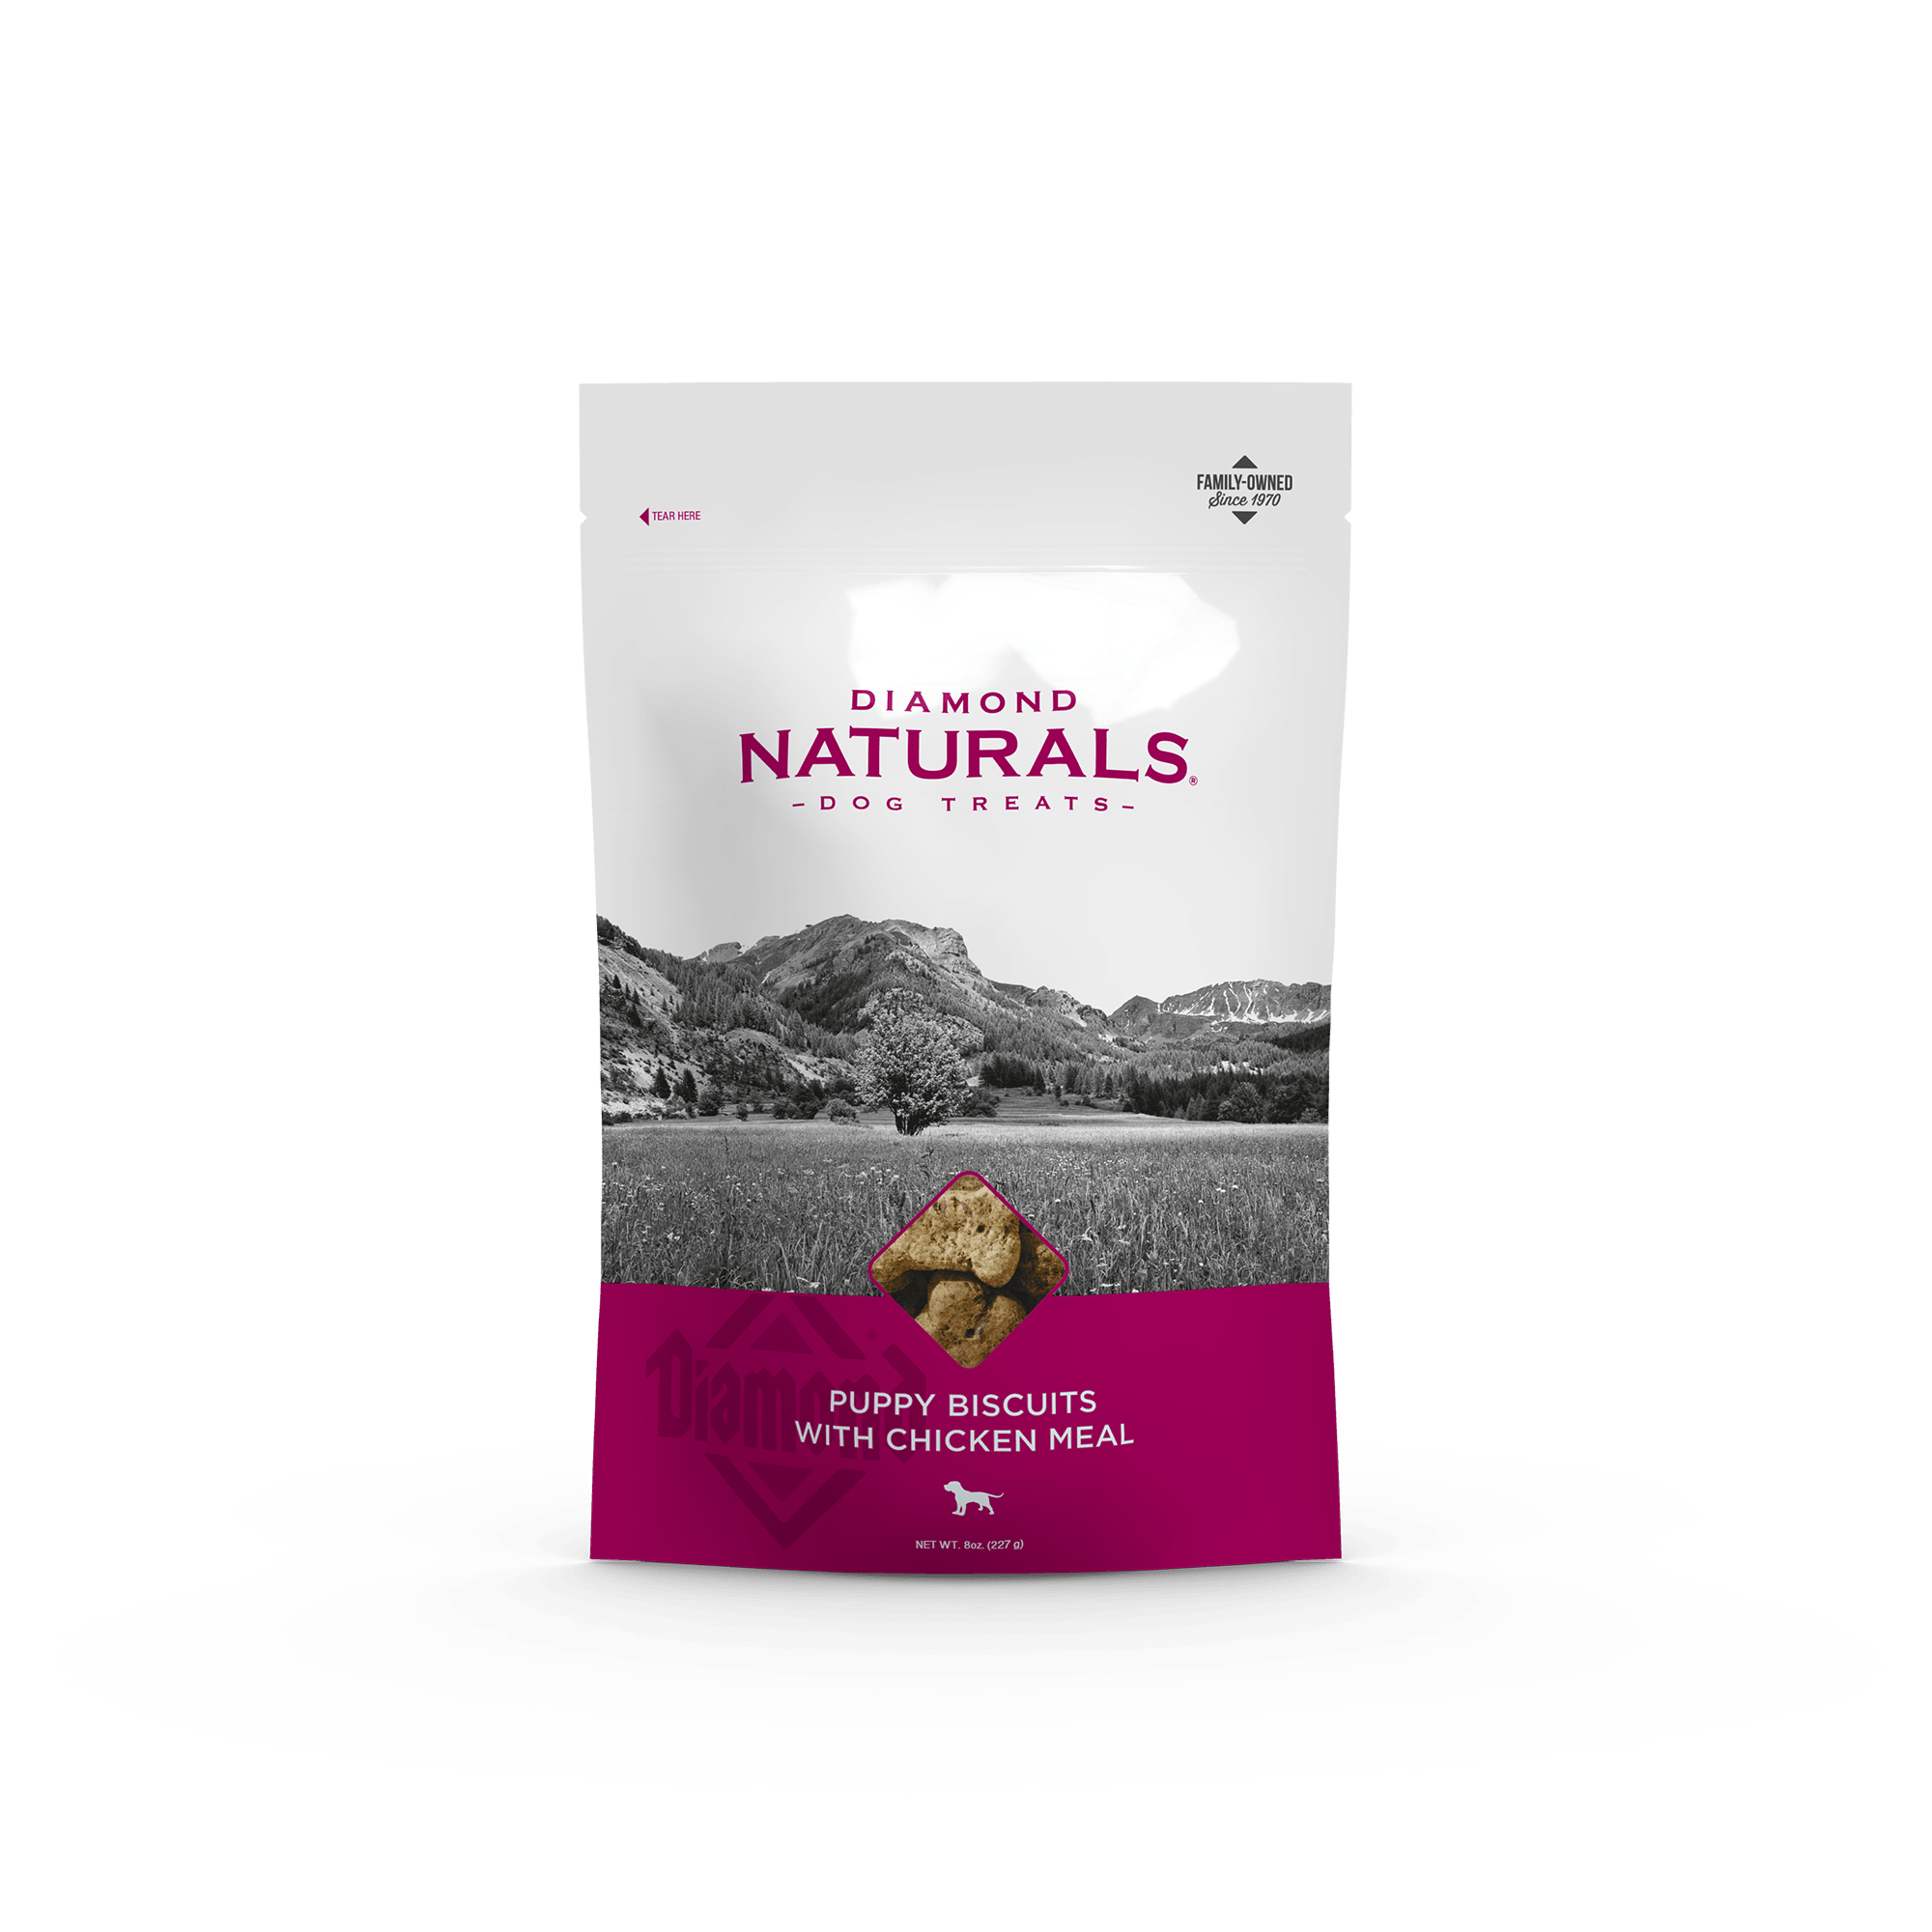 Puppy Biscuits with Chicken Meal bag front | Diamond Naturals